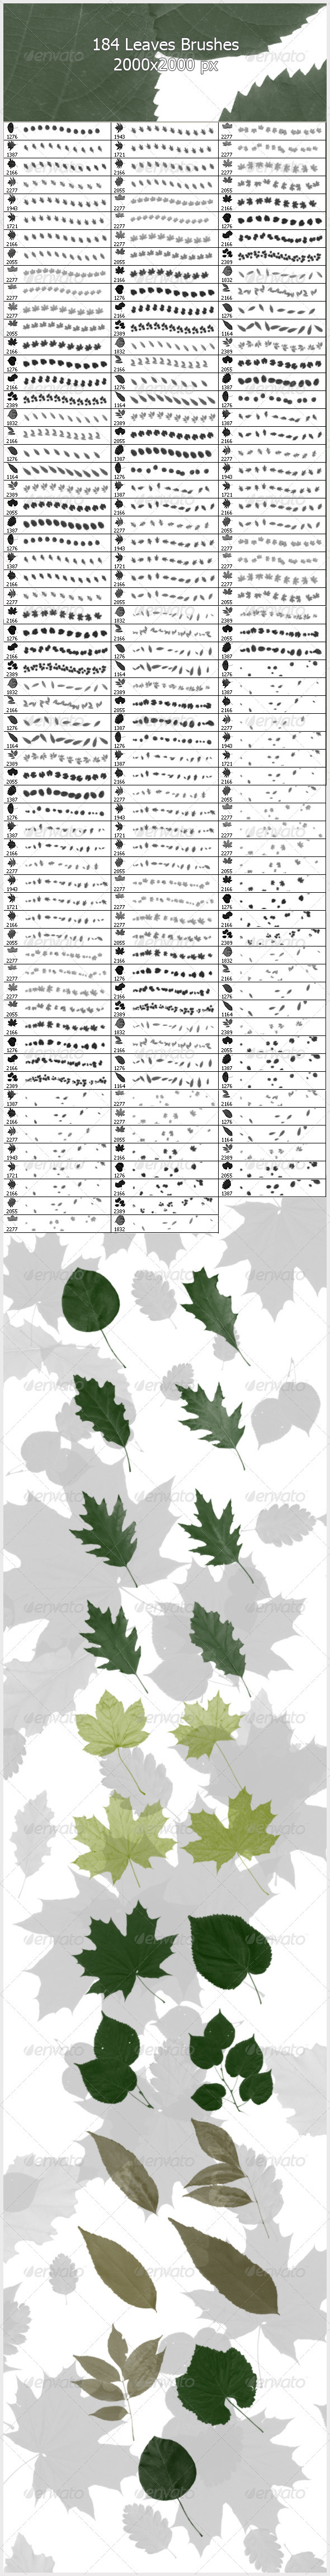 GraphicRiver 184 Leaves Brushes 2000px 3974520